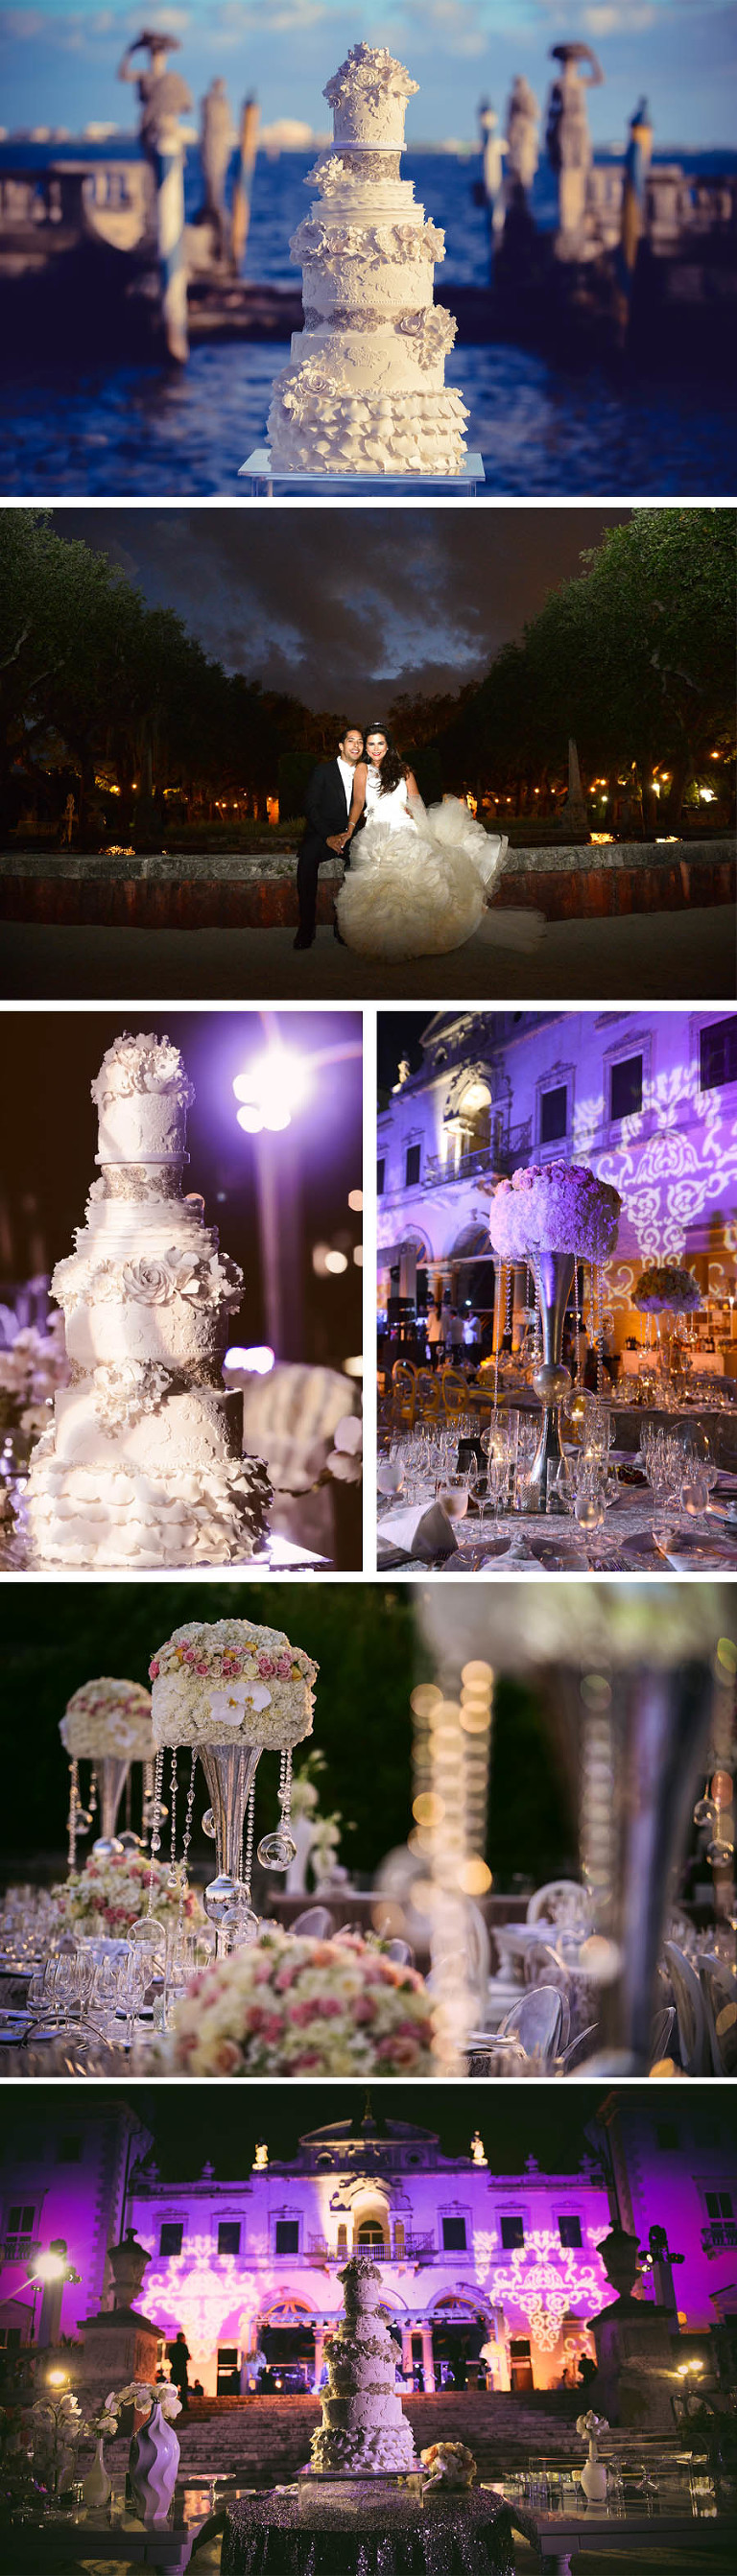 Vizcaya Wedding Cake